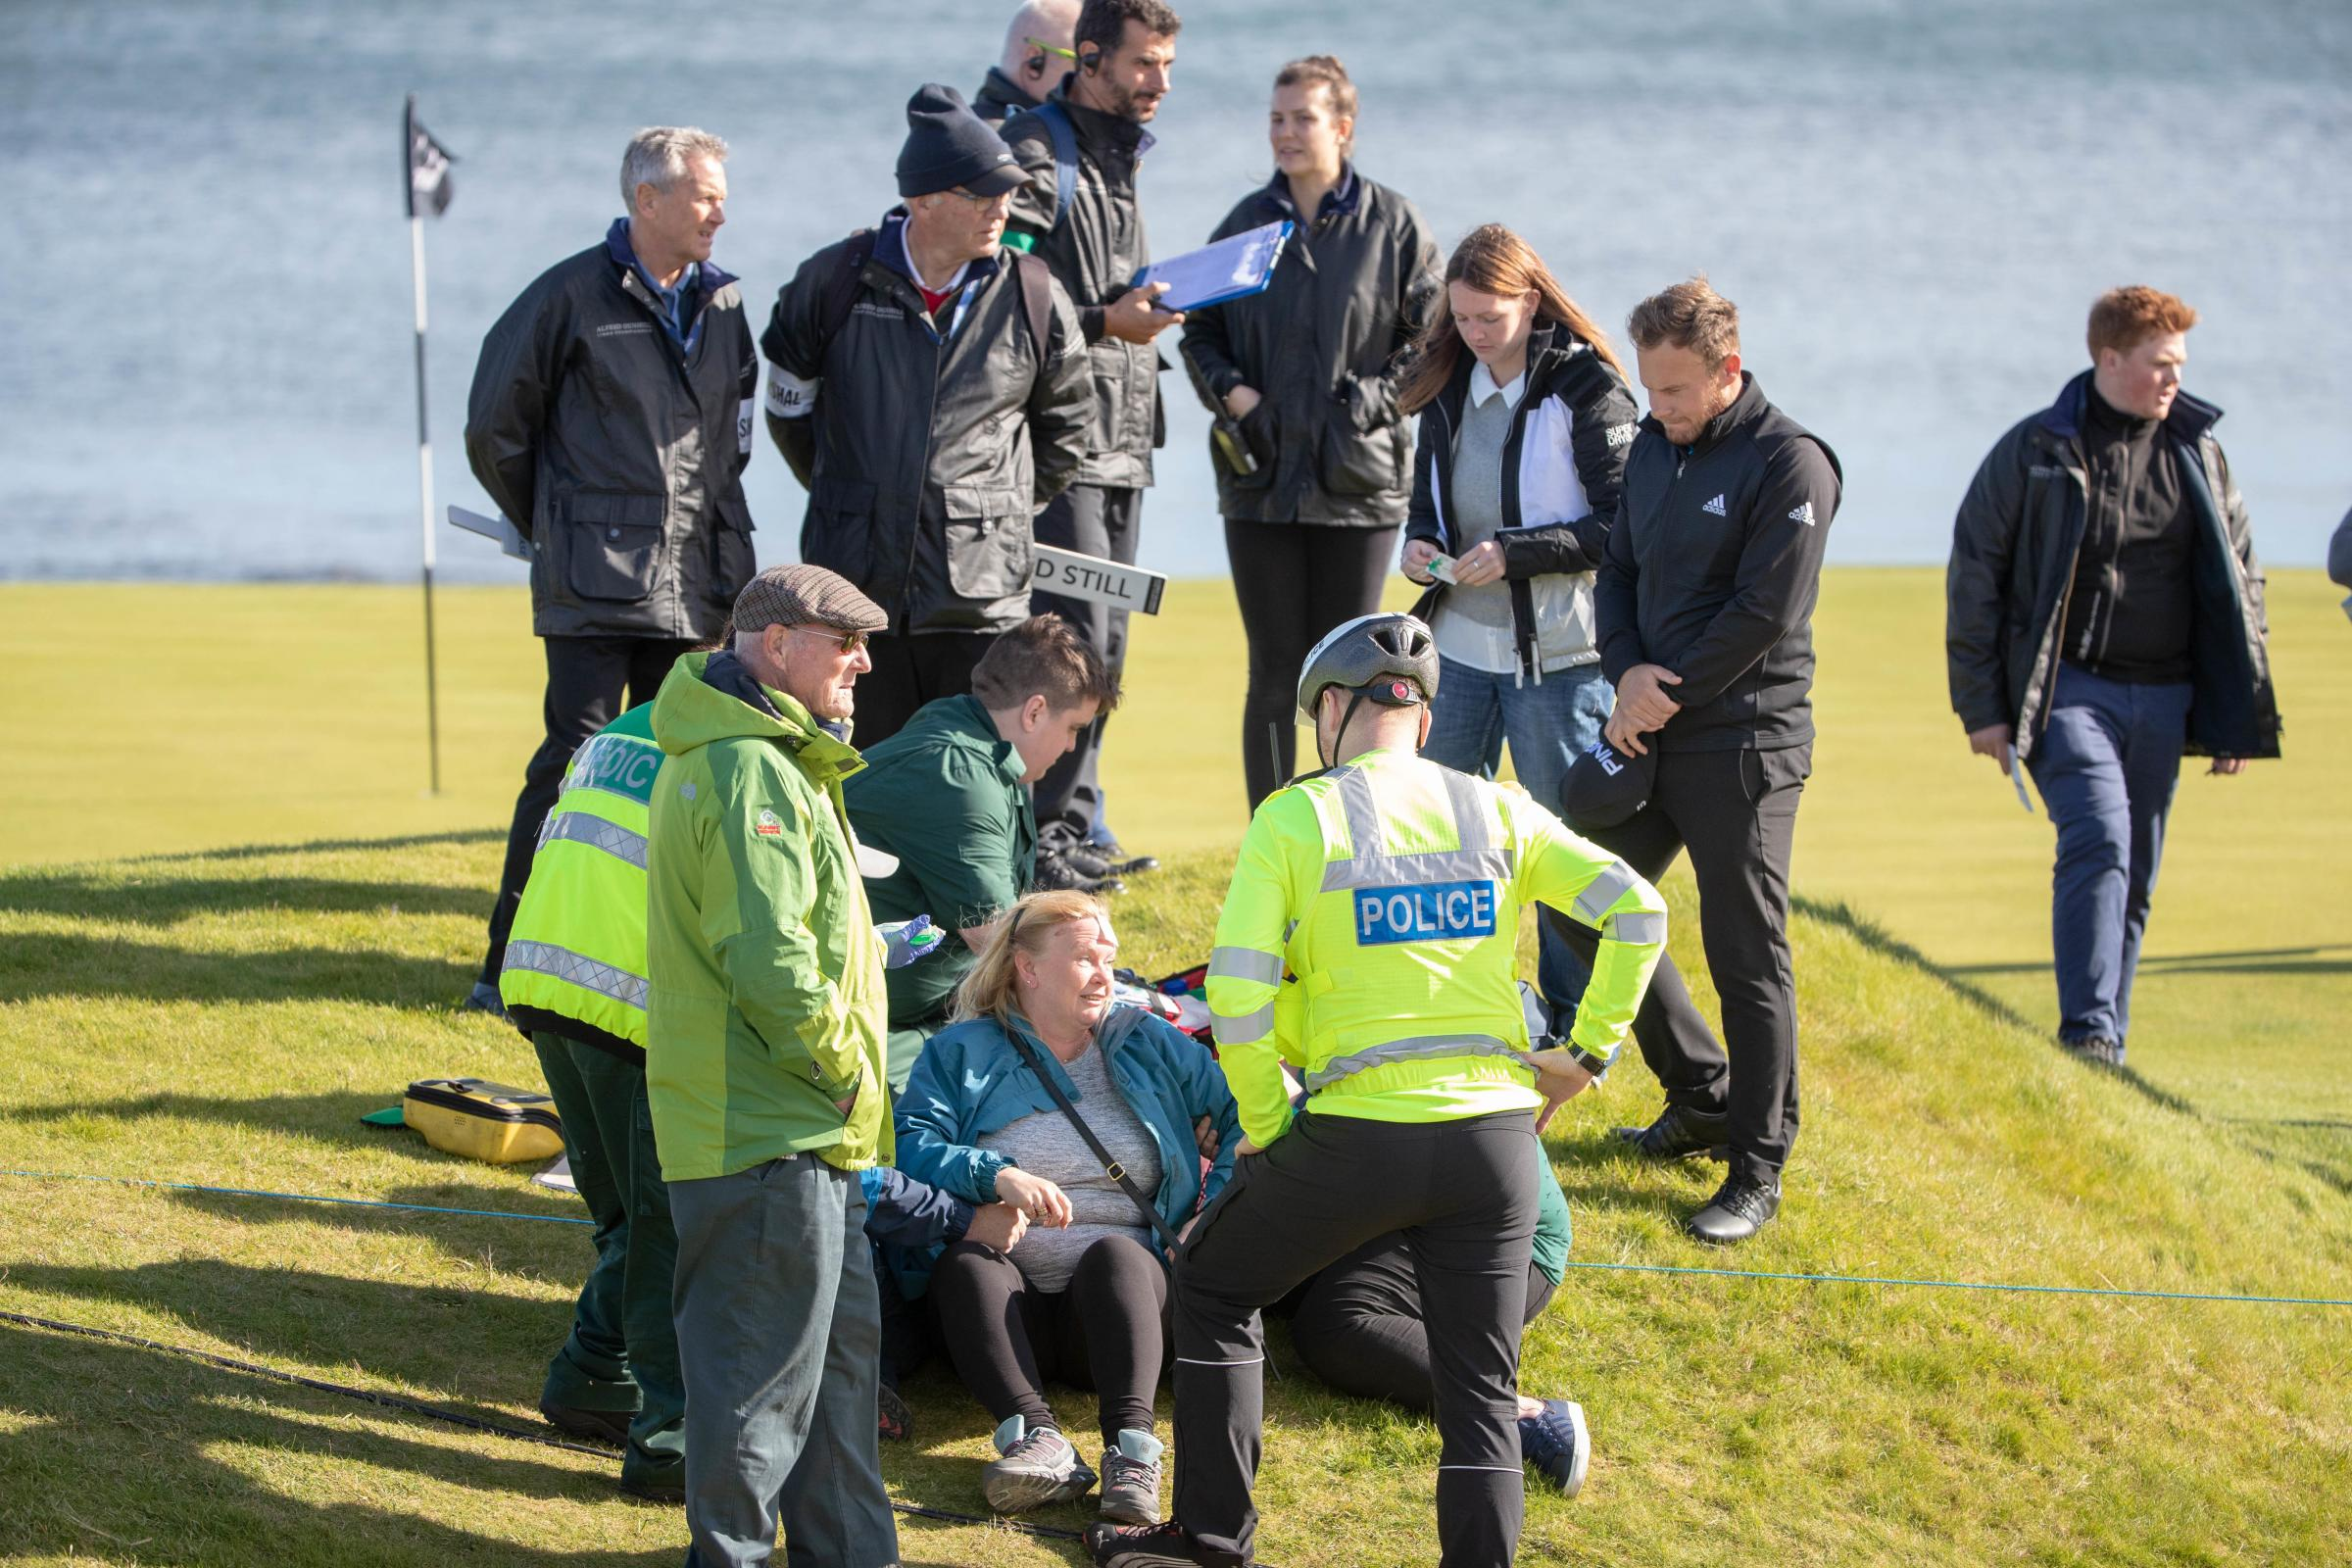 England's Tyrell Hatton stands over a spectator who he hit with his tee shot at the15th hole, prior to being taken back to the medical centre during day one at Kingsbarns Golf Course, St Andrews PRESS ASSOCIATION Photo. Picture date: T